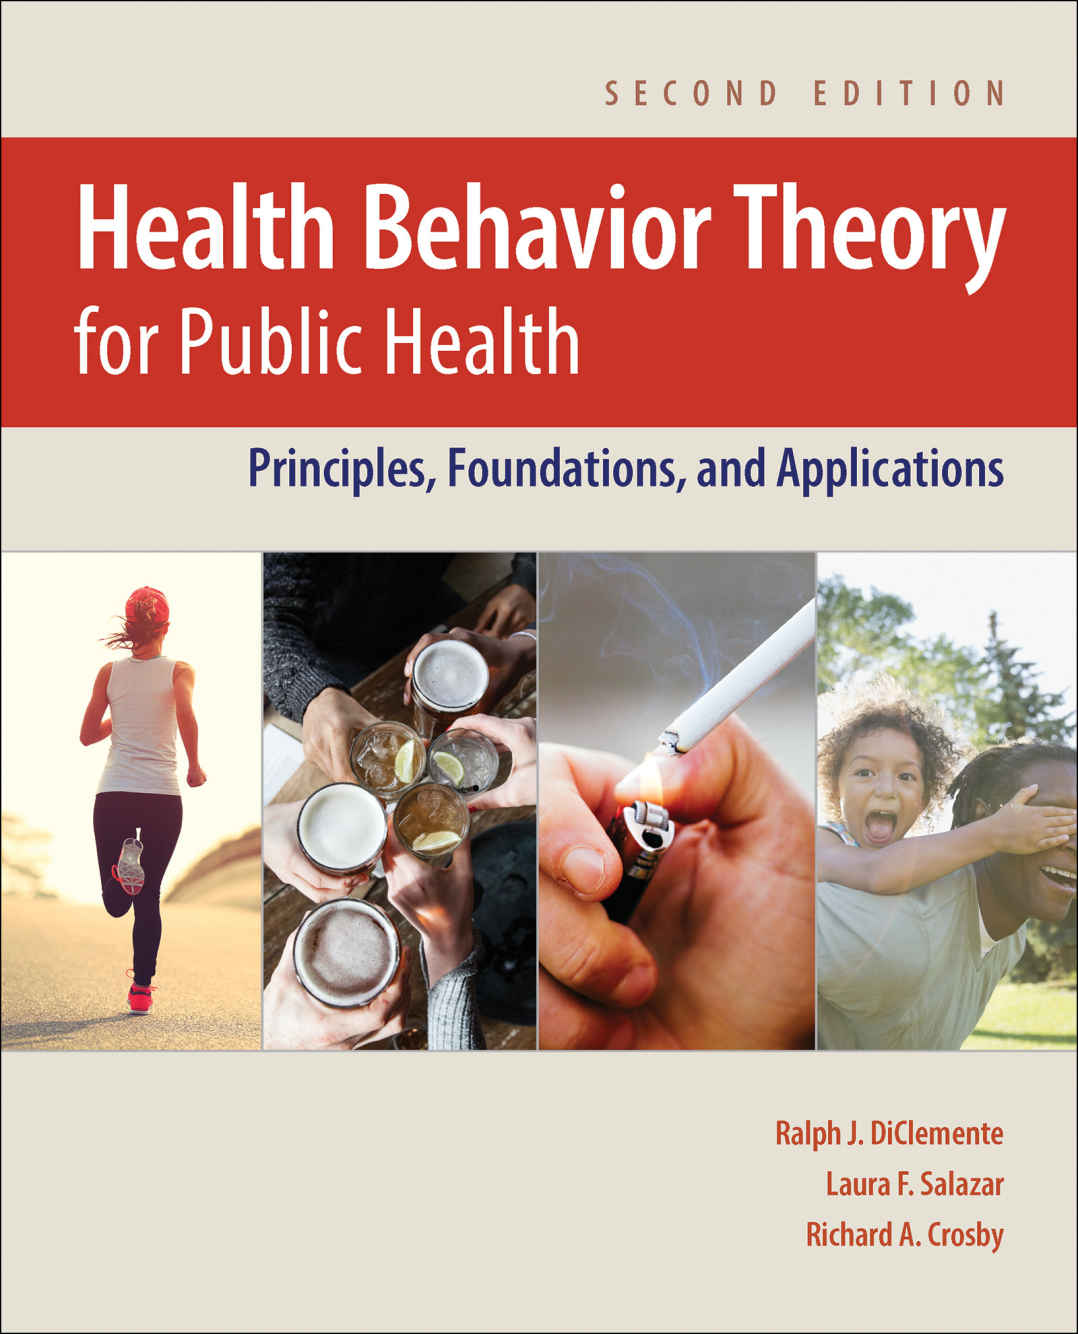 Health Behavior Theory for Public Health 2nd Edition Pdf Free Download